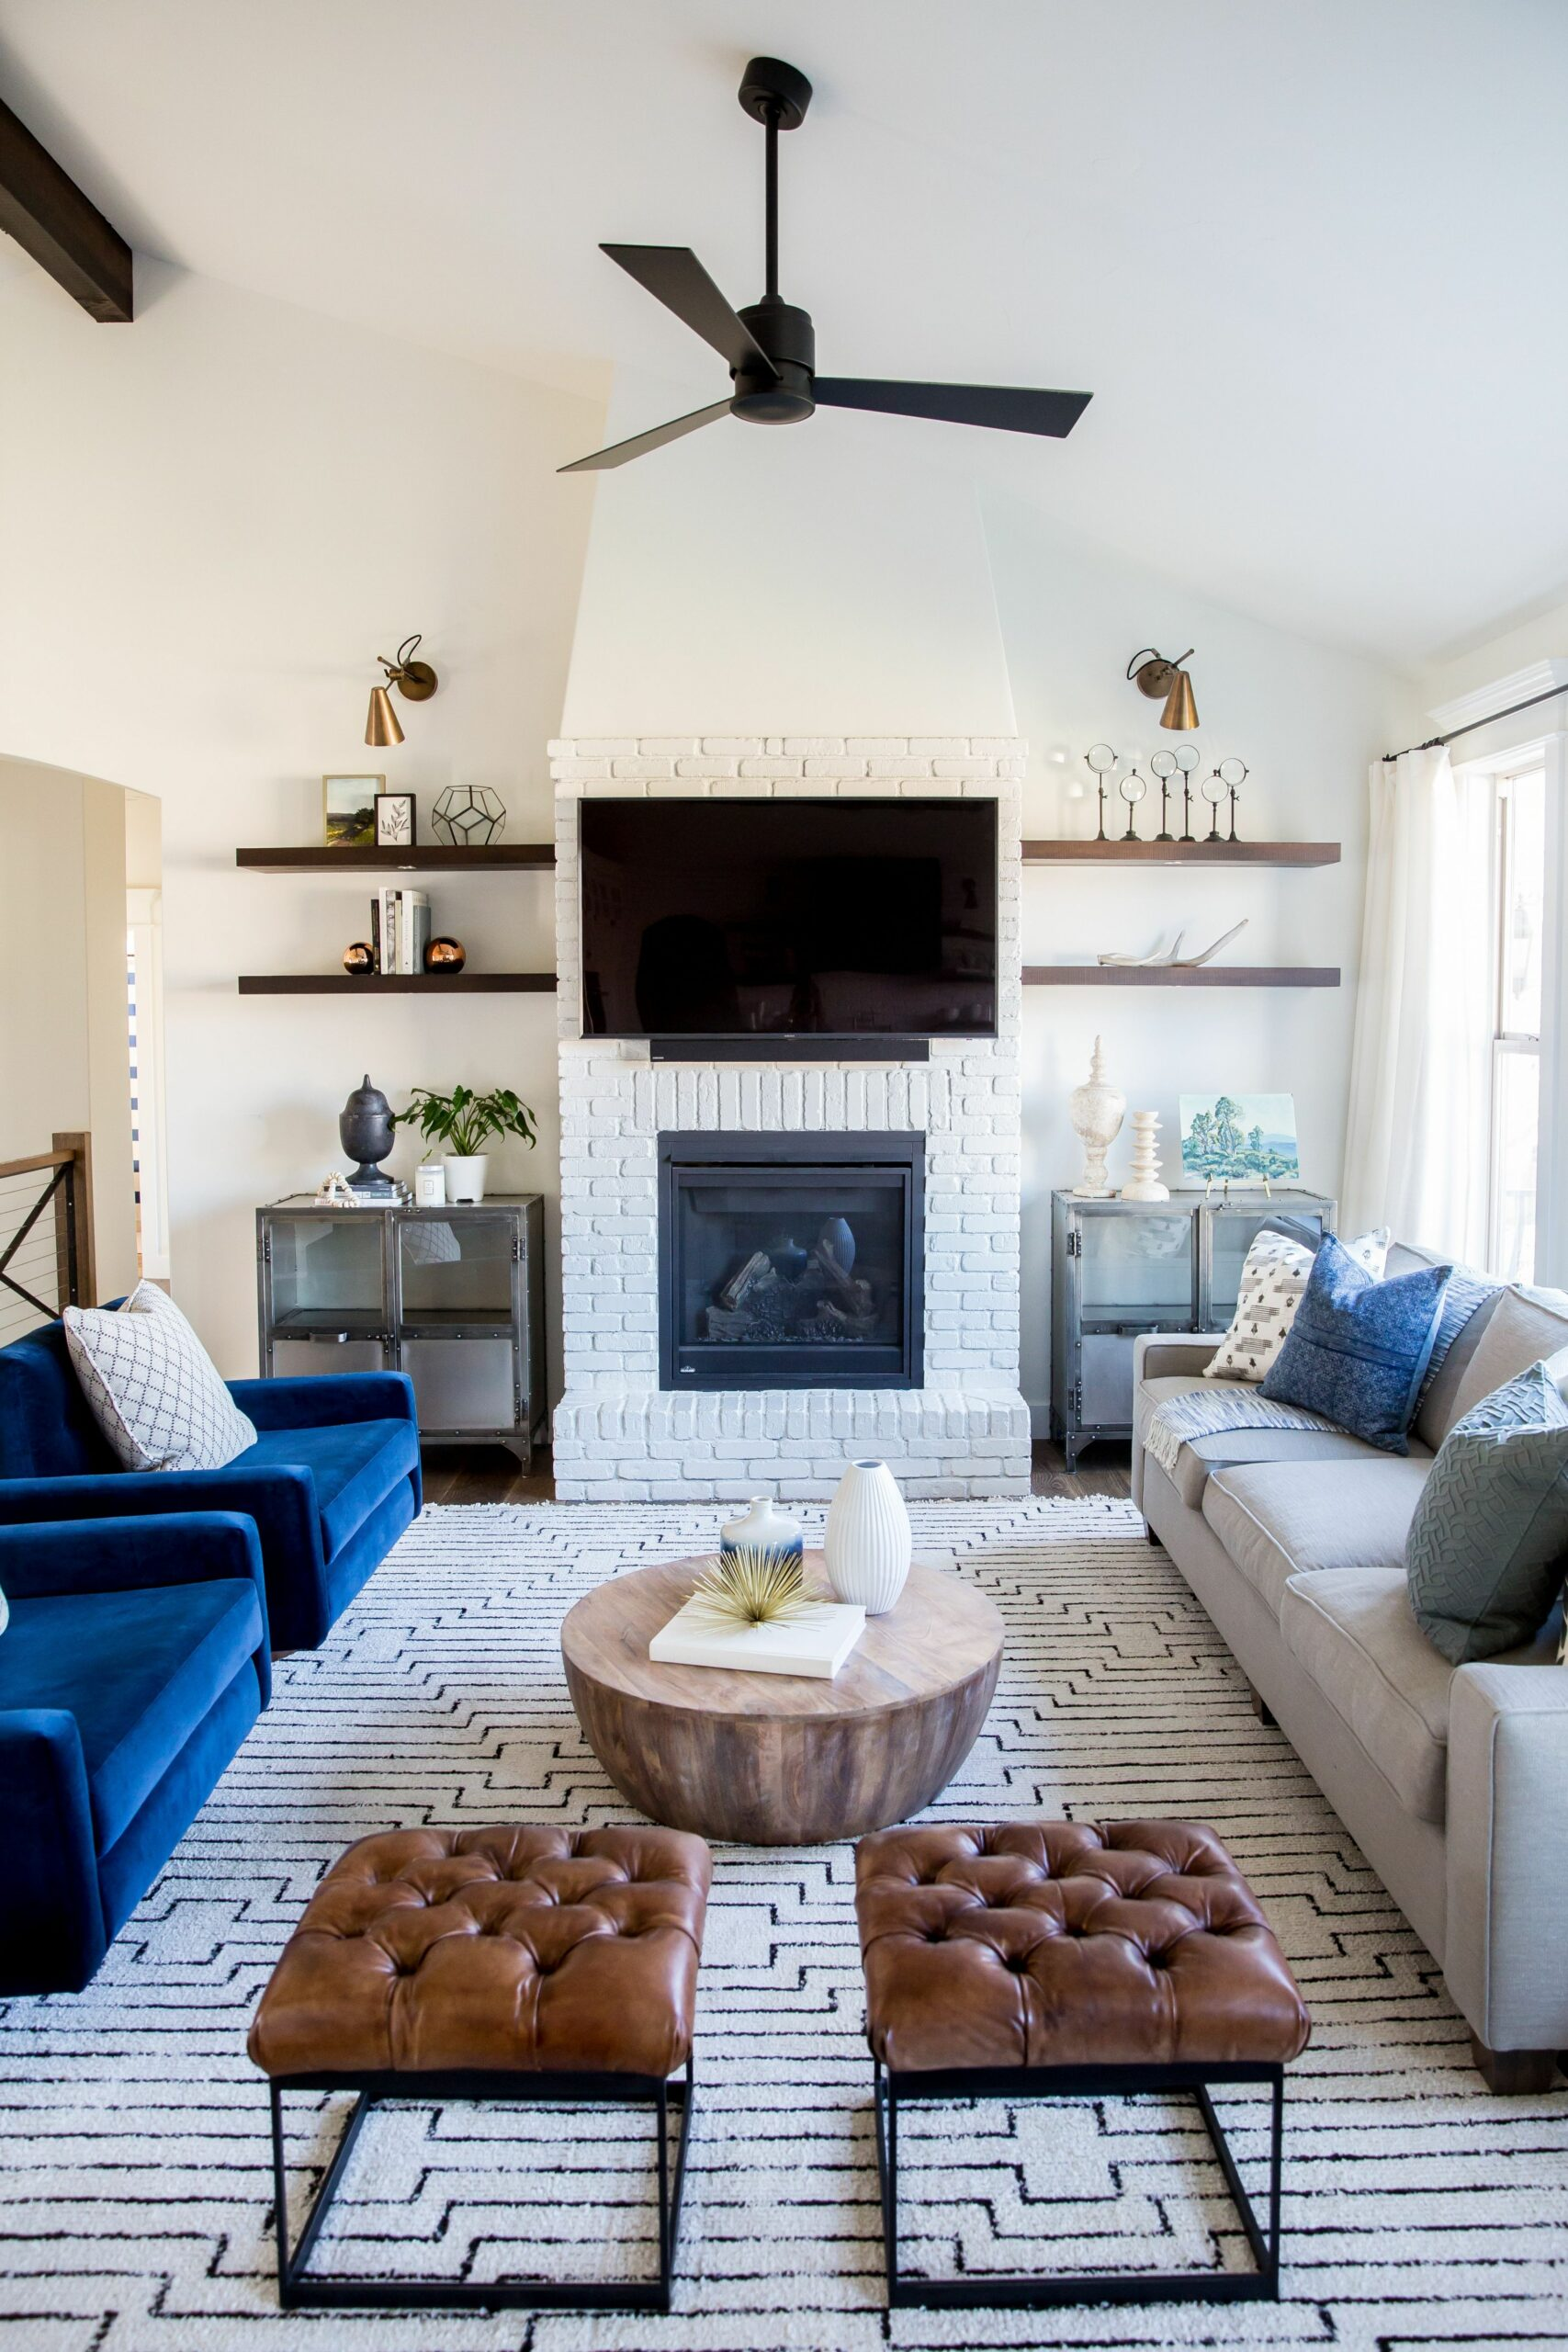 Lehi Remodel Reveal (With images) | Rectangular living rooms ...